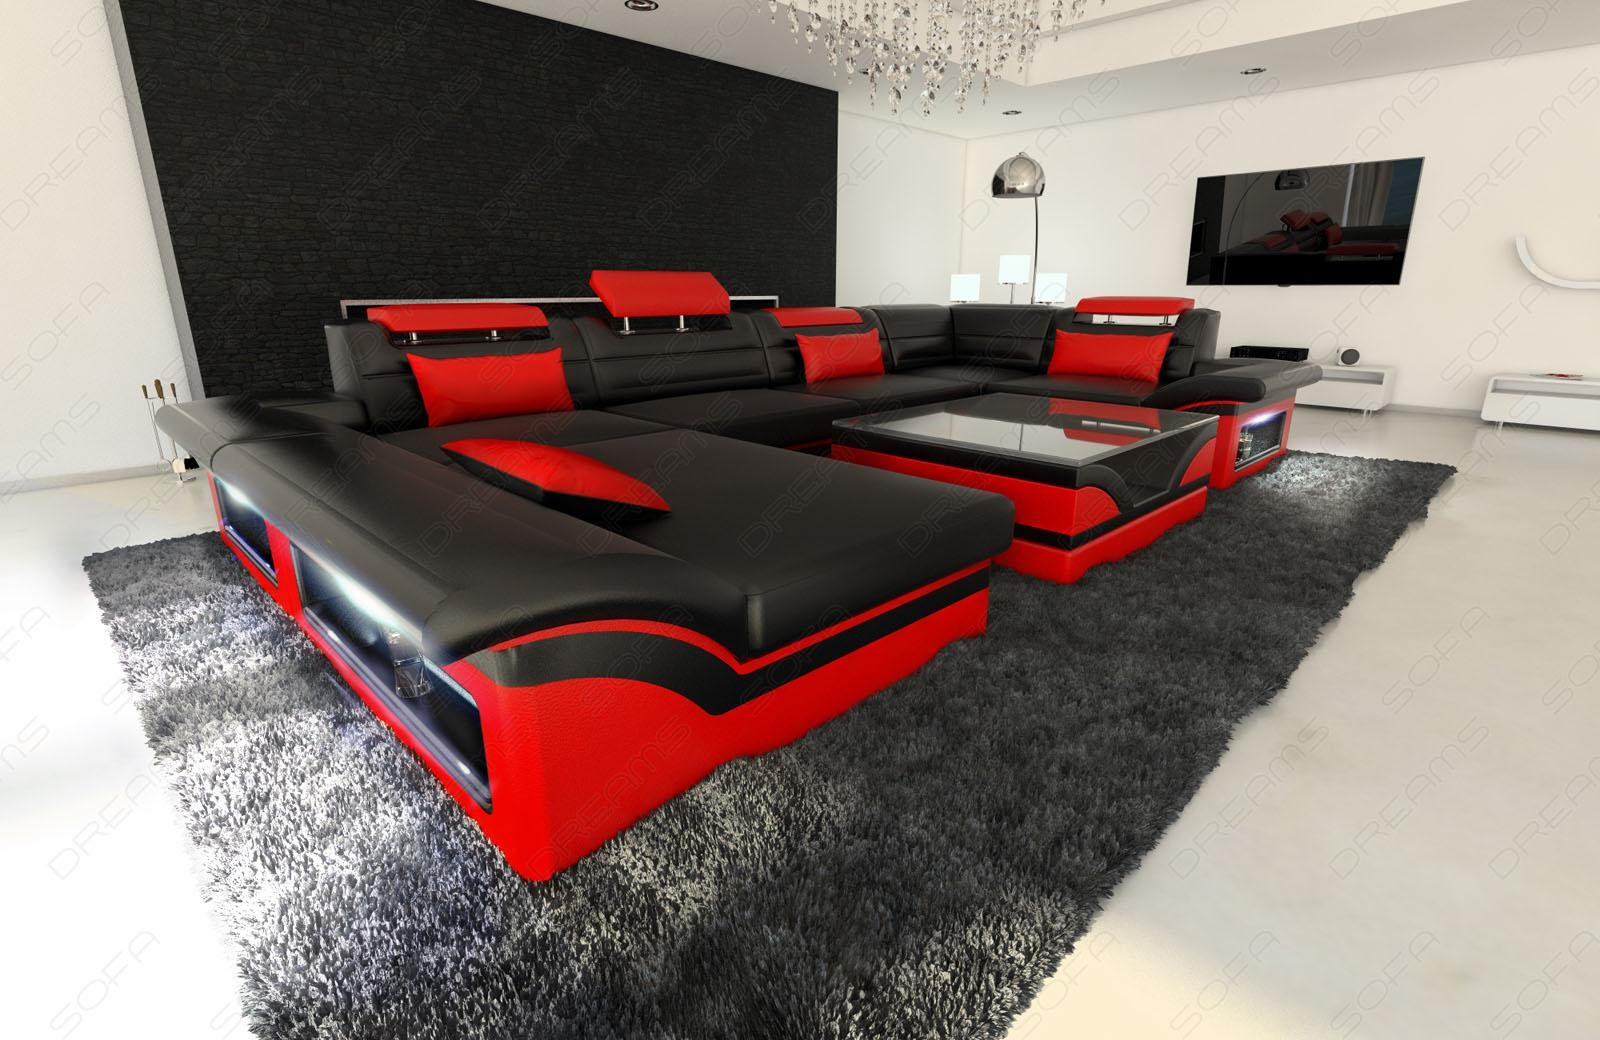 20 Best Collection of Black and Red Sofas | Sofa Ideas